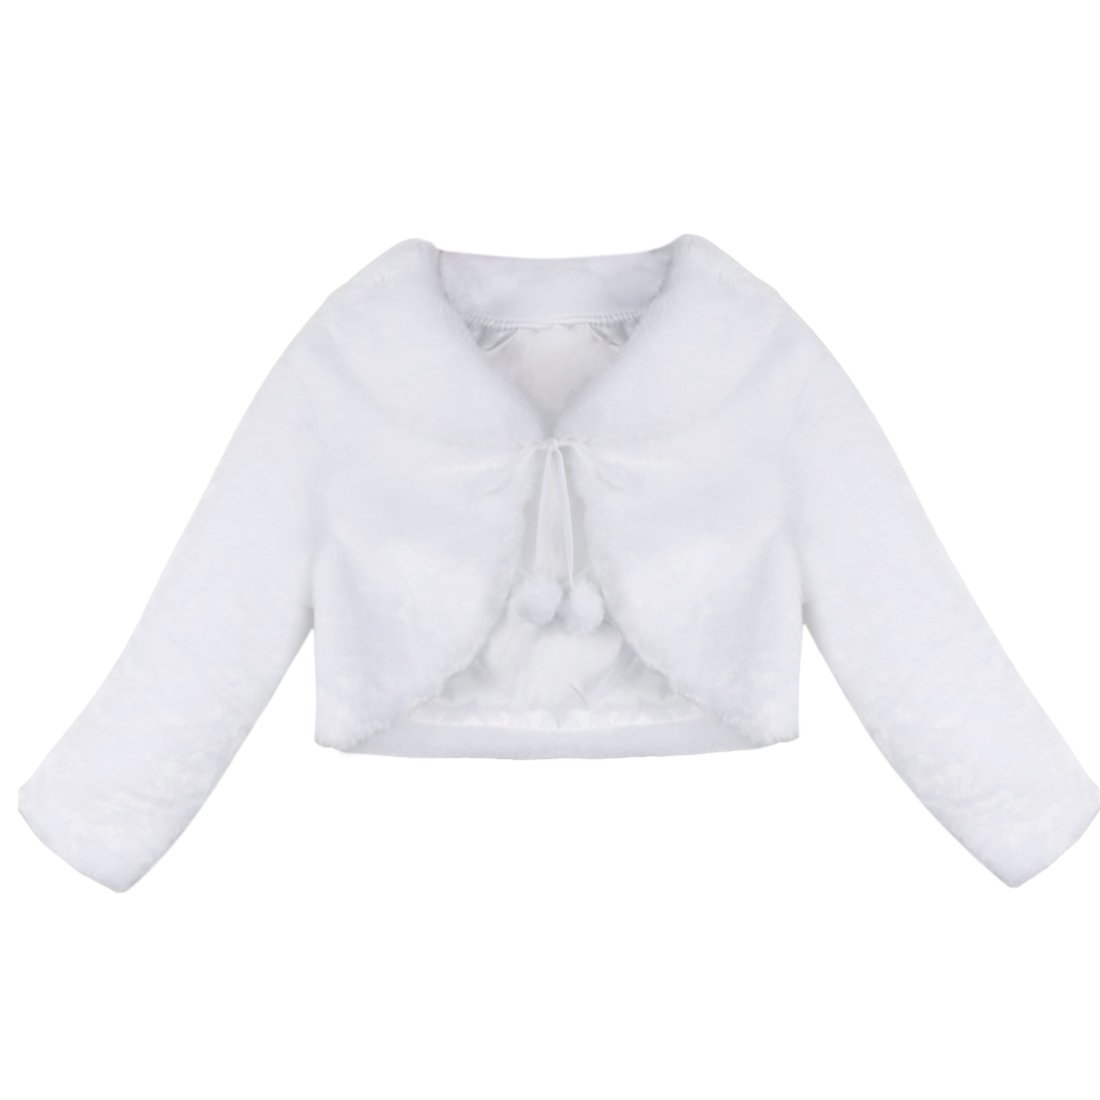 CHICTRY Flower Girl Jackets Coats Child Cute Faux-Fur Long Sleeve Wedding Party Winter Outwear